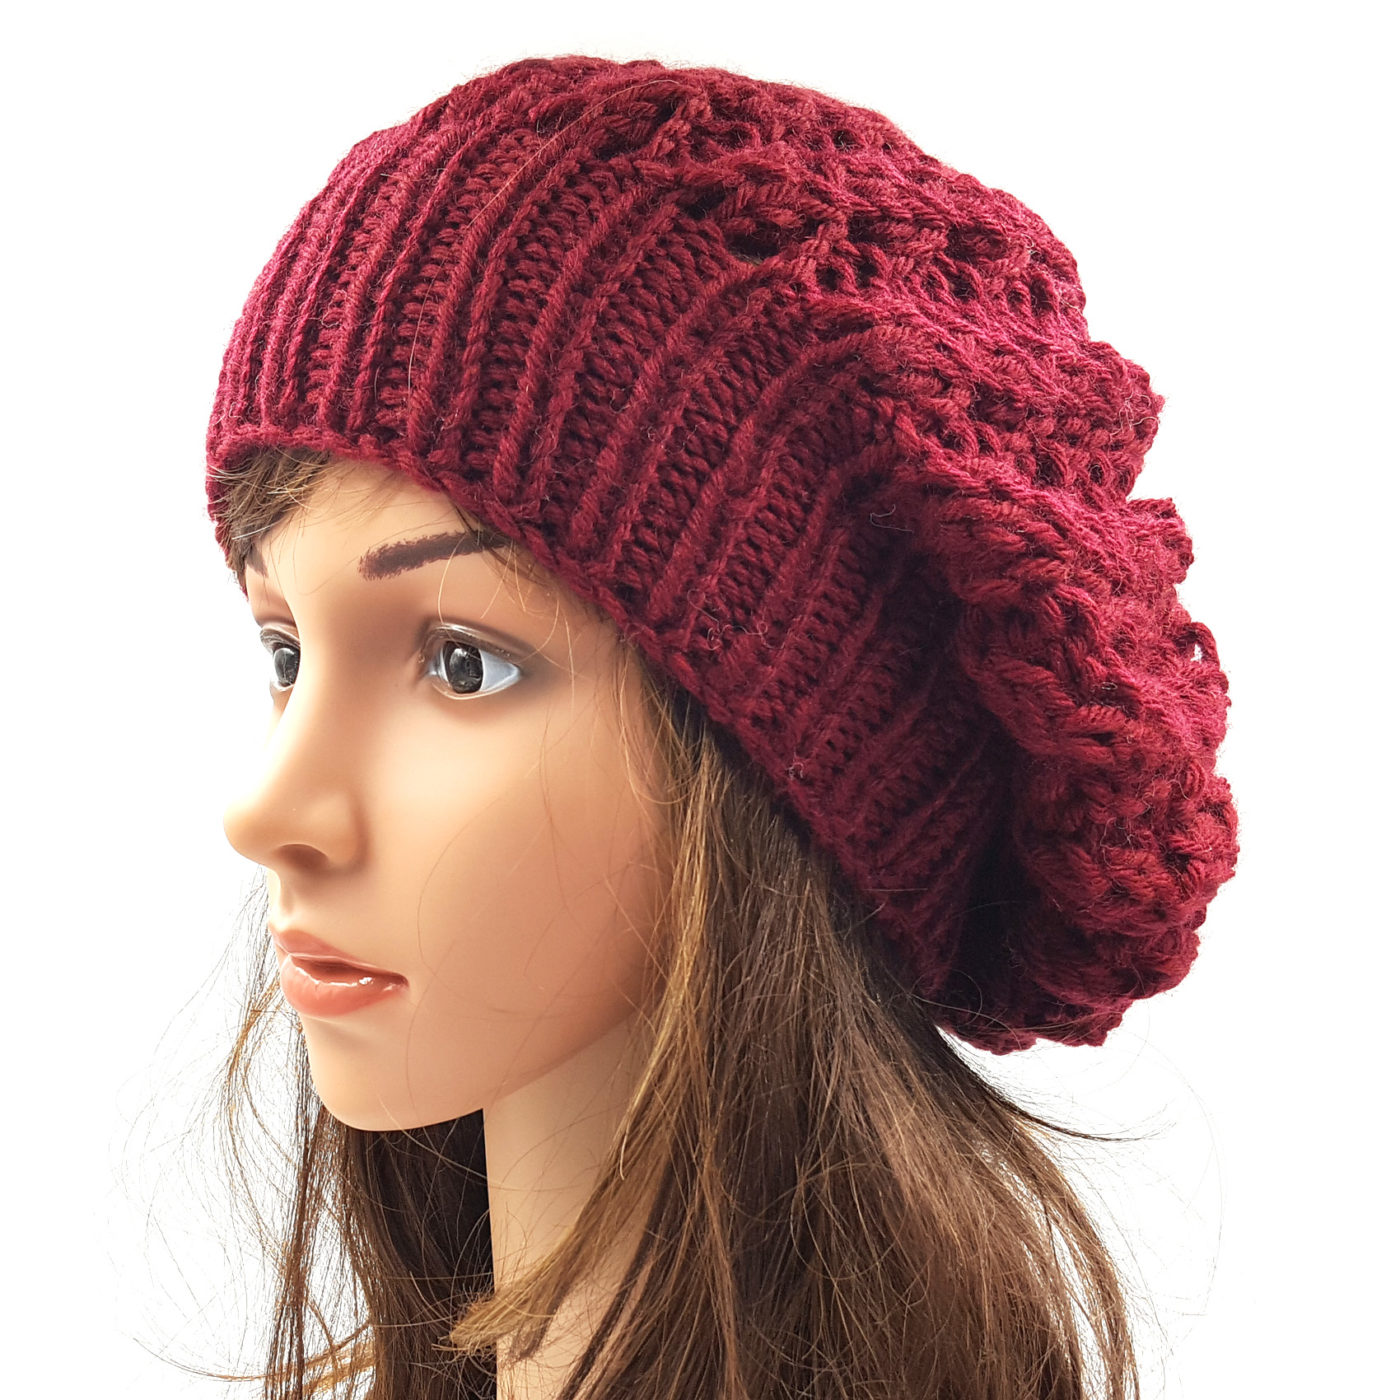 Girls Slouchy Shroom Beanie Cap - Maroon • Magic Needles ... e388e8ab7b5